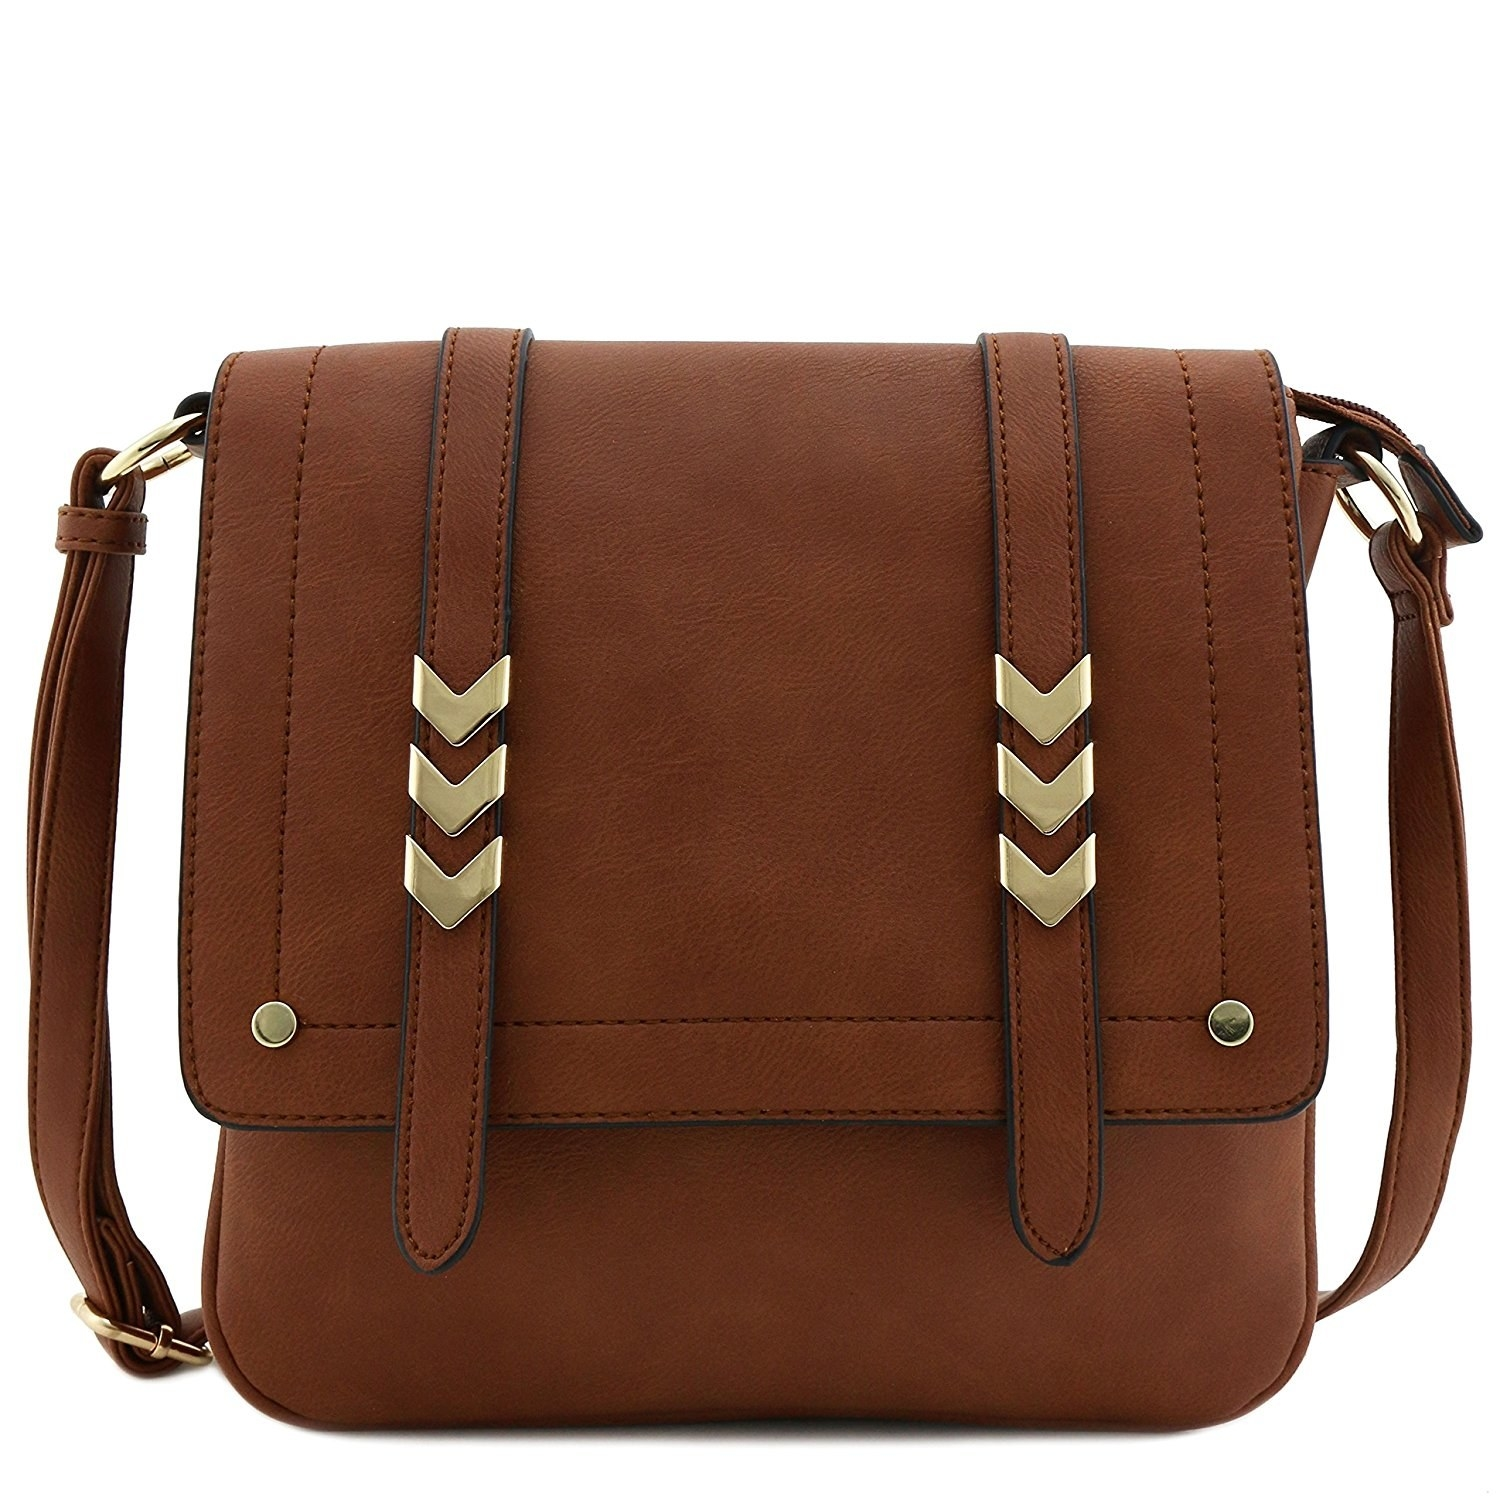 65252a51a8ed An all-purpose large crossbody with plenty of pockets and cool details on  the straps